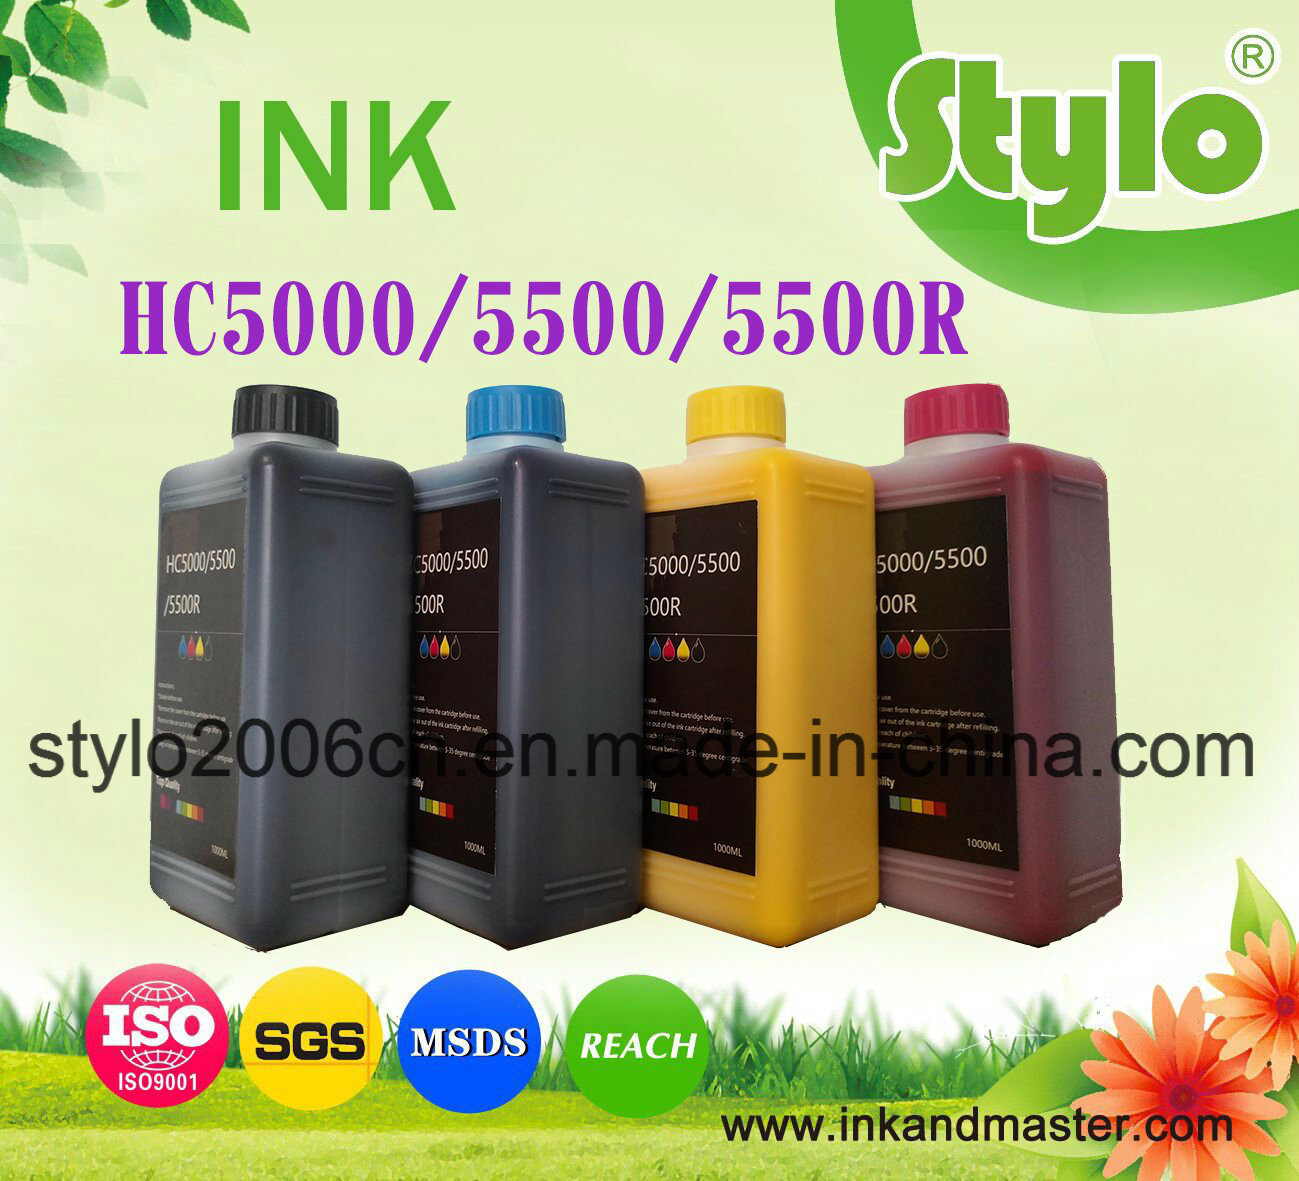 Hc5000/Hc5500 Refill Ink Chip/Ink, 1000ml